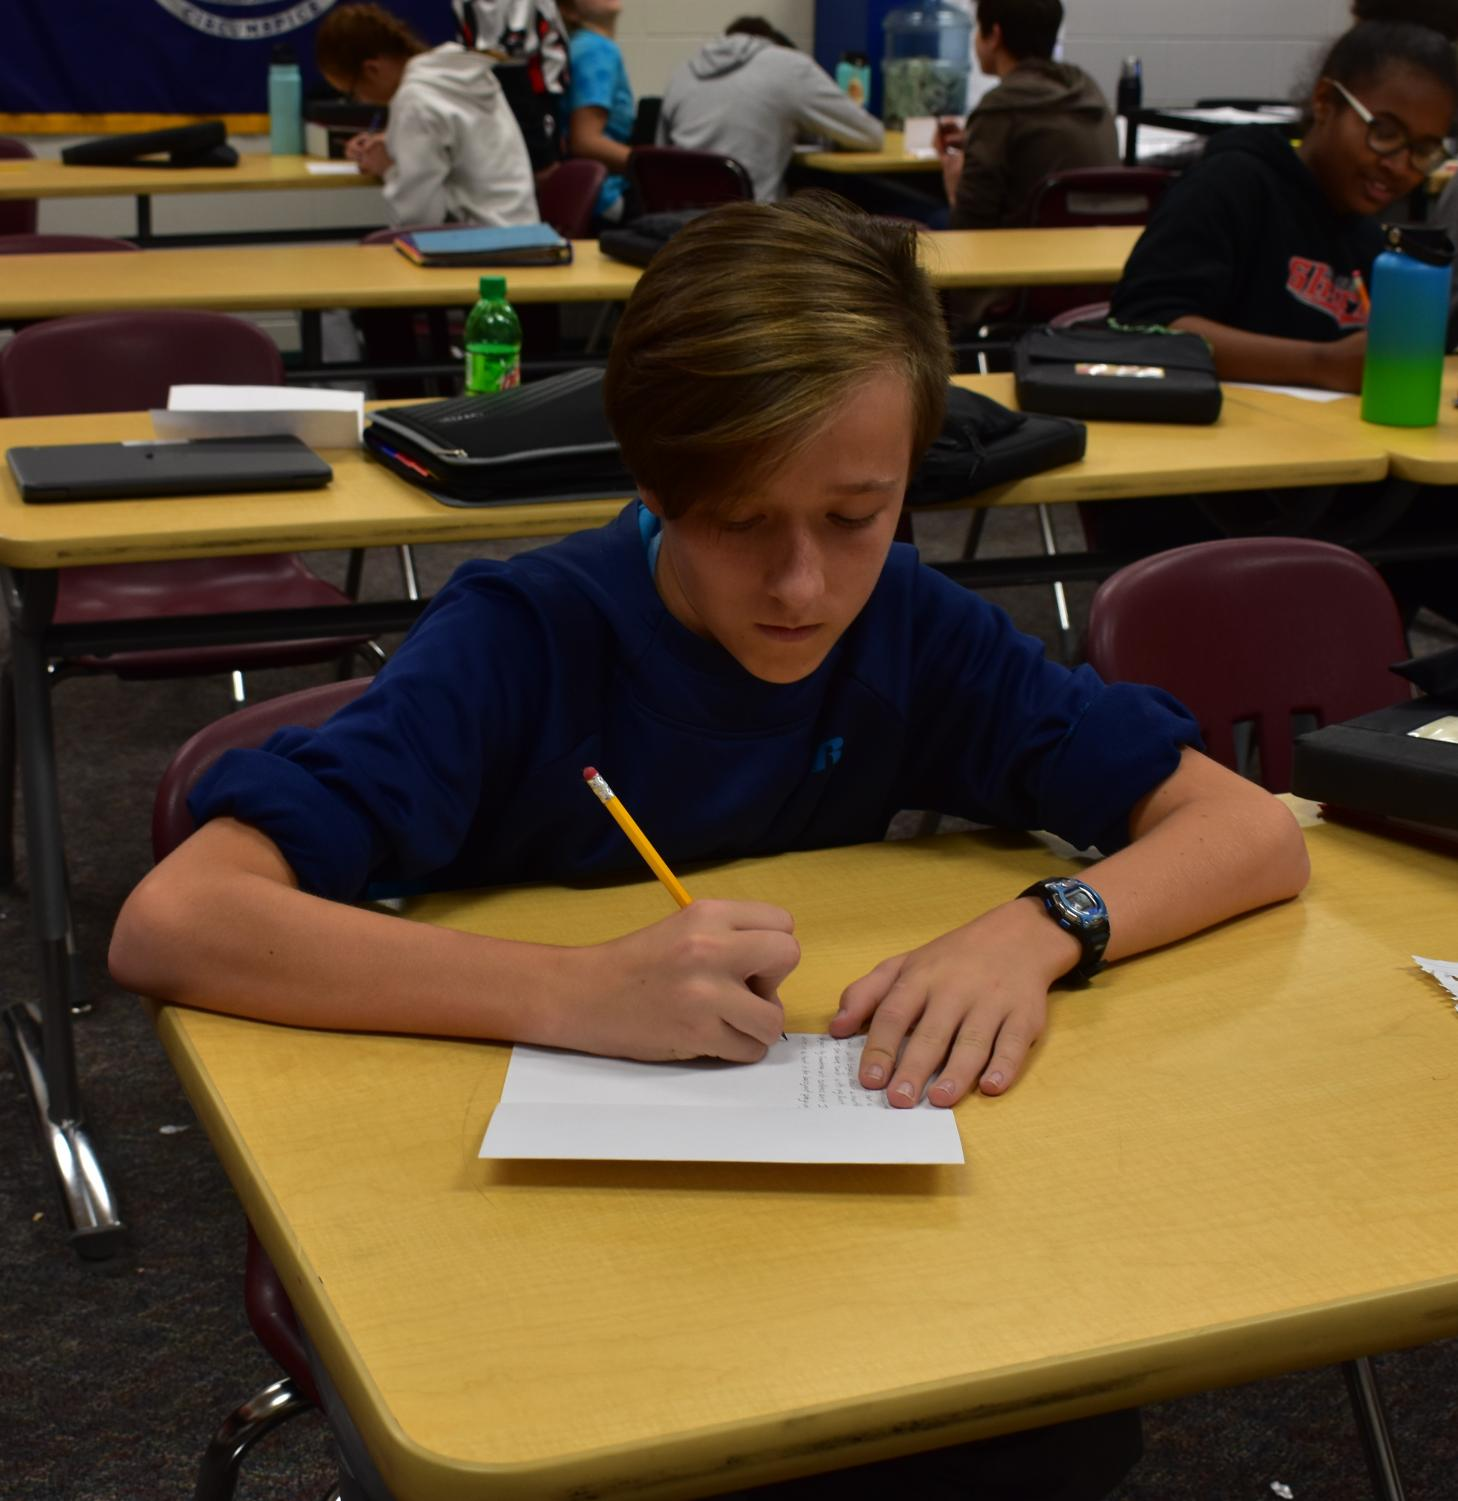 Freshman Dominic Gilman has transitioned well by working hard in all his classes.